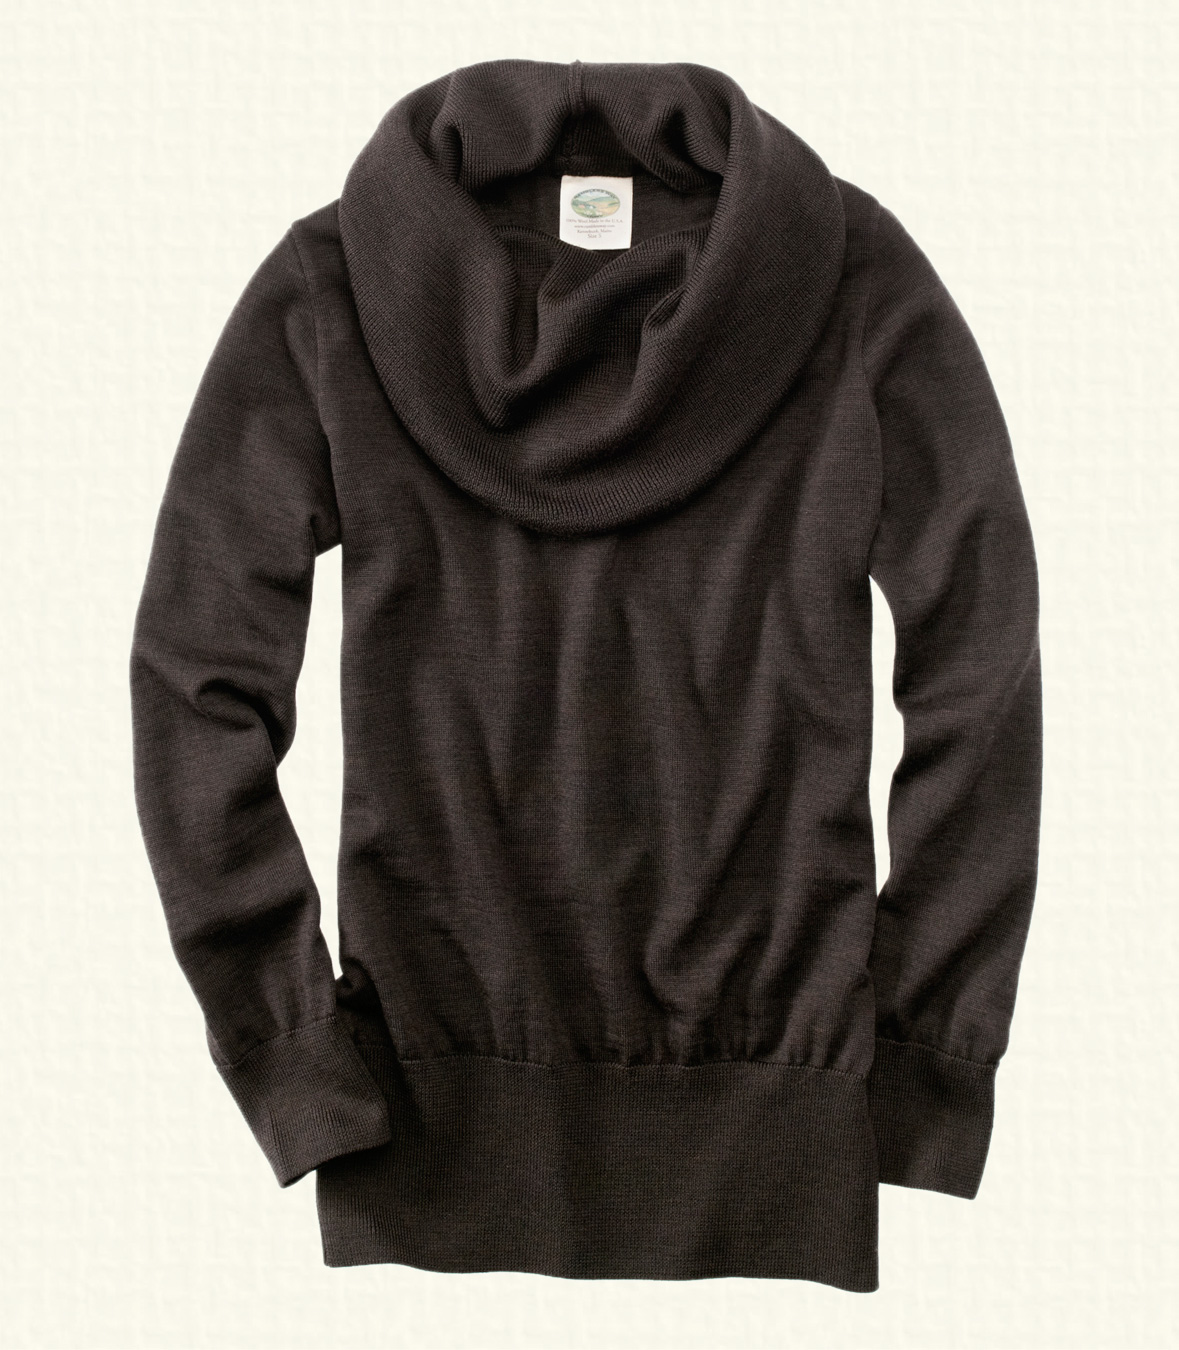 On Sale - Women's Merino Wool Cowl Neck Sweater Made in USA ...